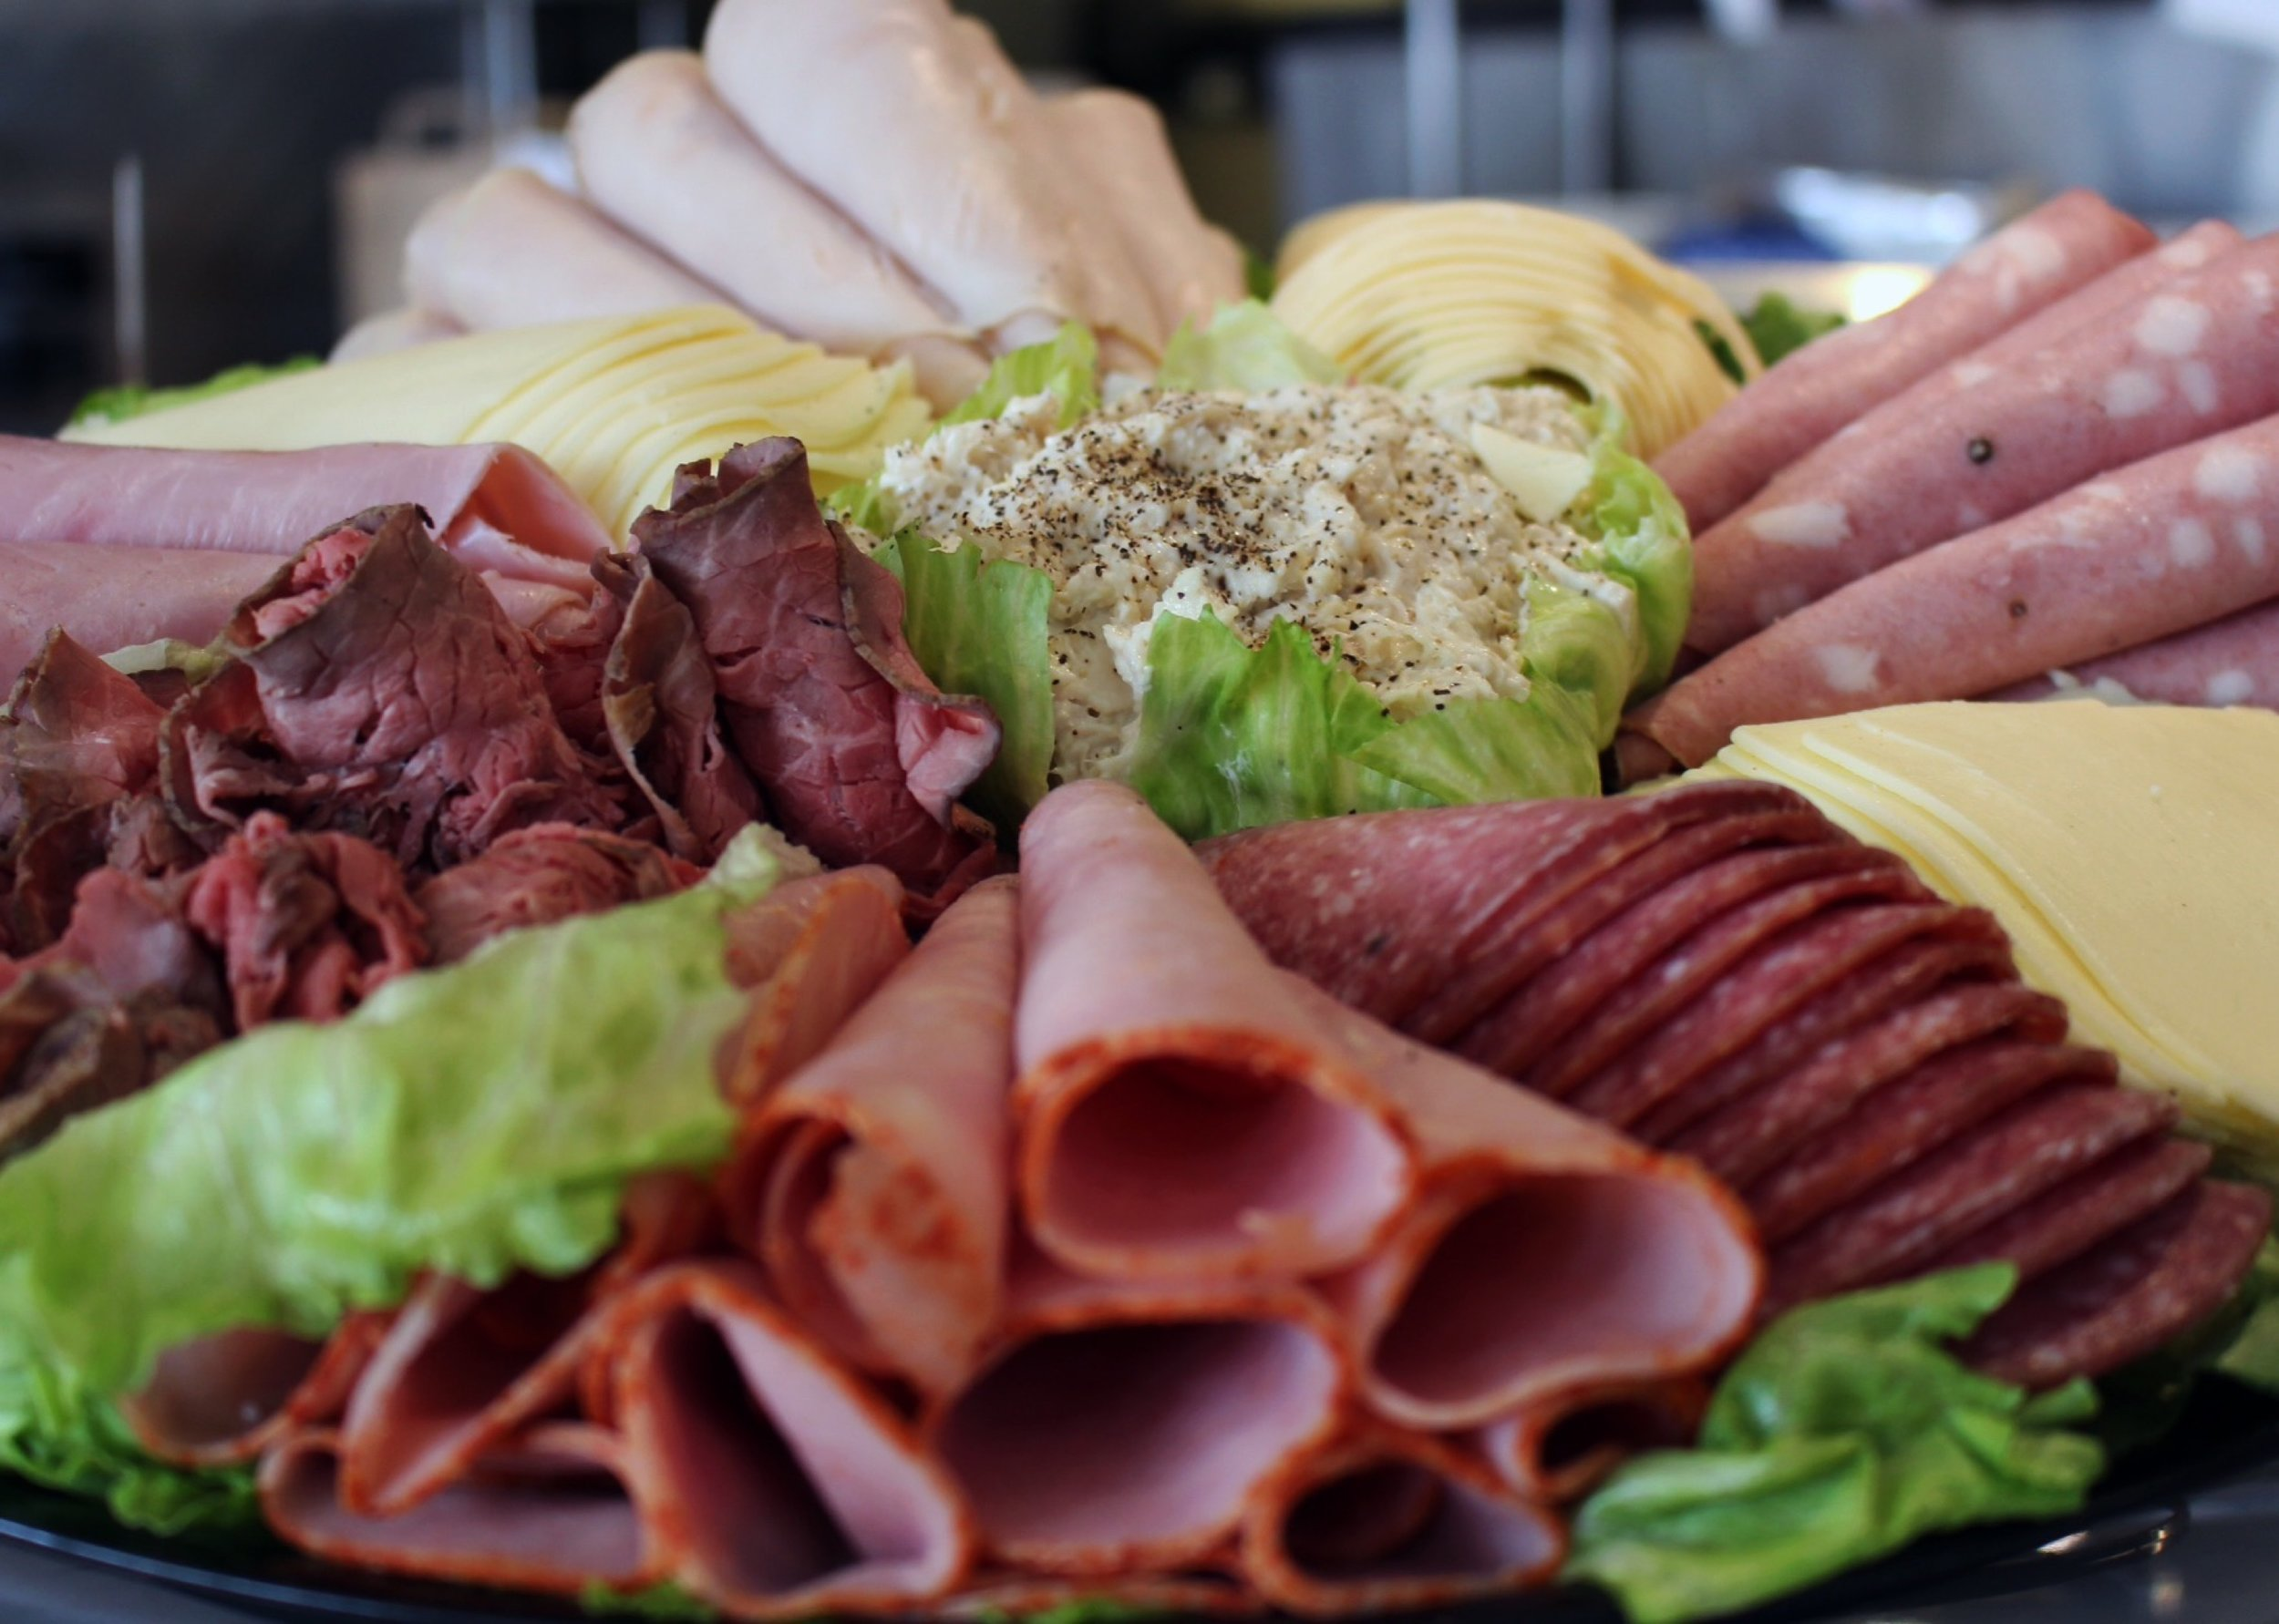 Cold Cut Platter 1_Cleaned Up.jpg